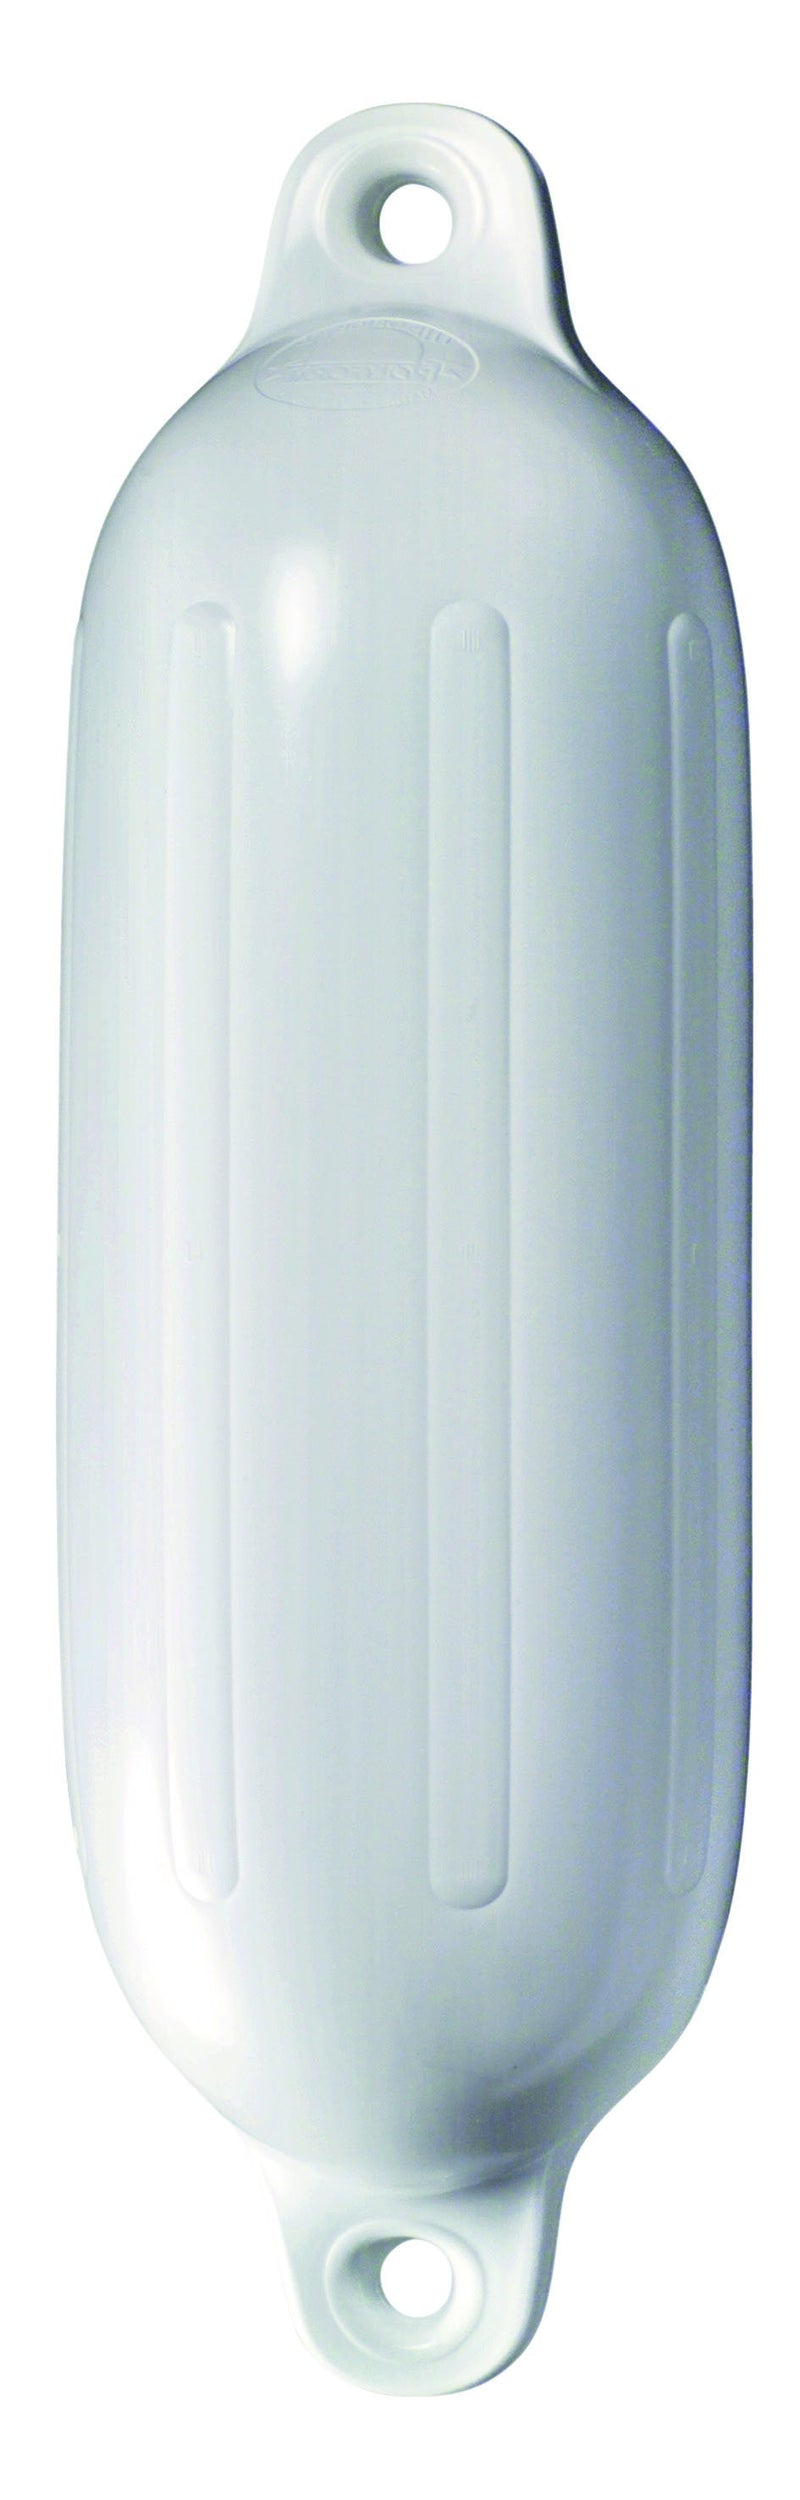 G4 Polyform Fender 585mm(L) x 170mm(D)